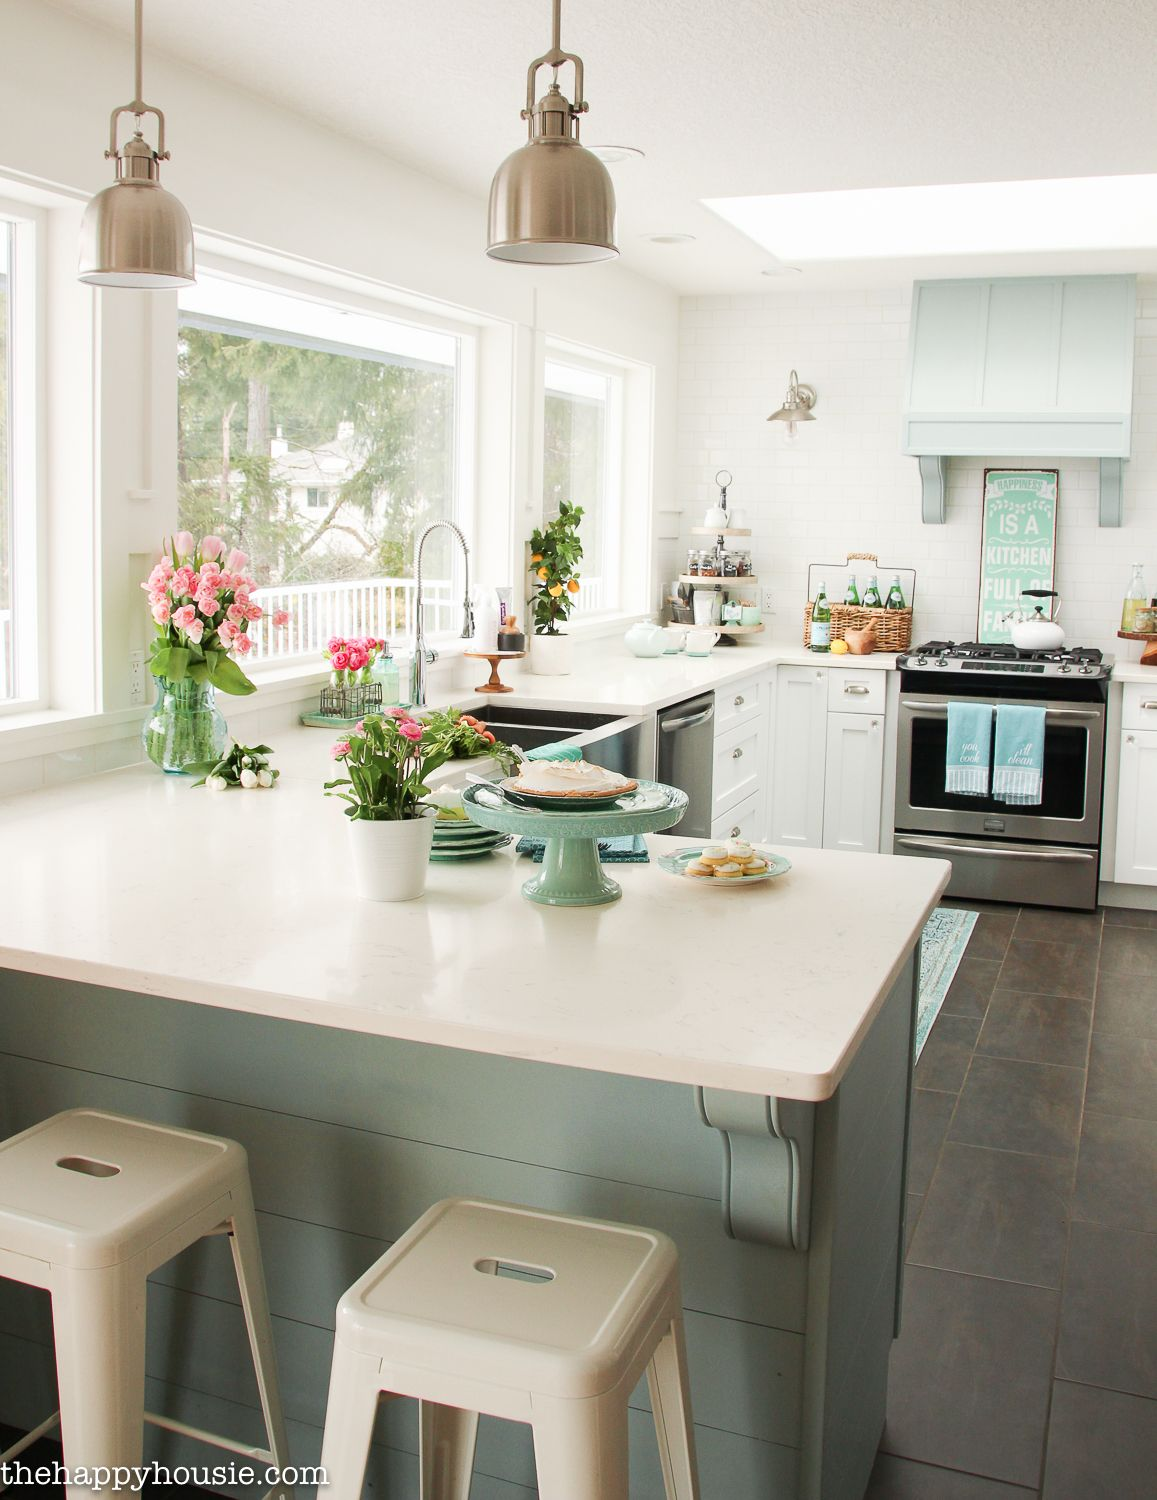 Pinterest-Worthy All-White Rooms | Bright, Kitchens and Spaces